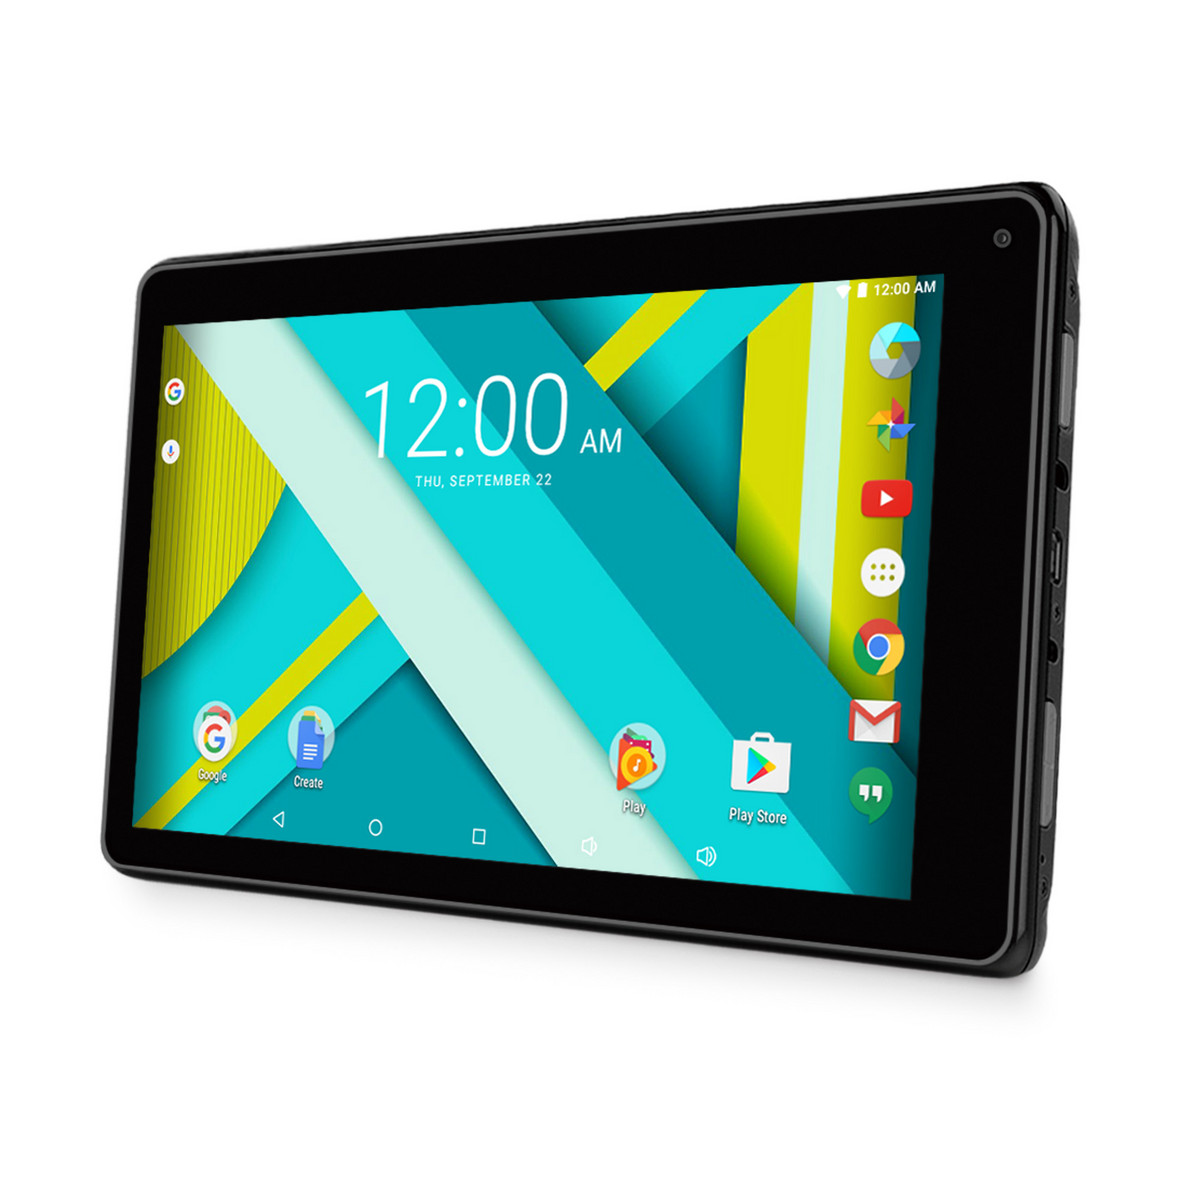 Inexpensive Rca Voyager Iii Tablet Now Shipping For Just